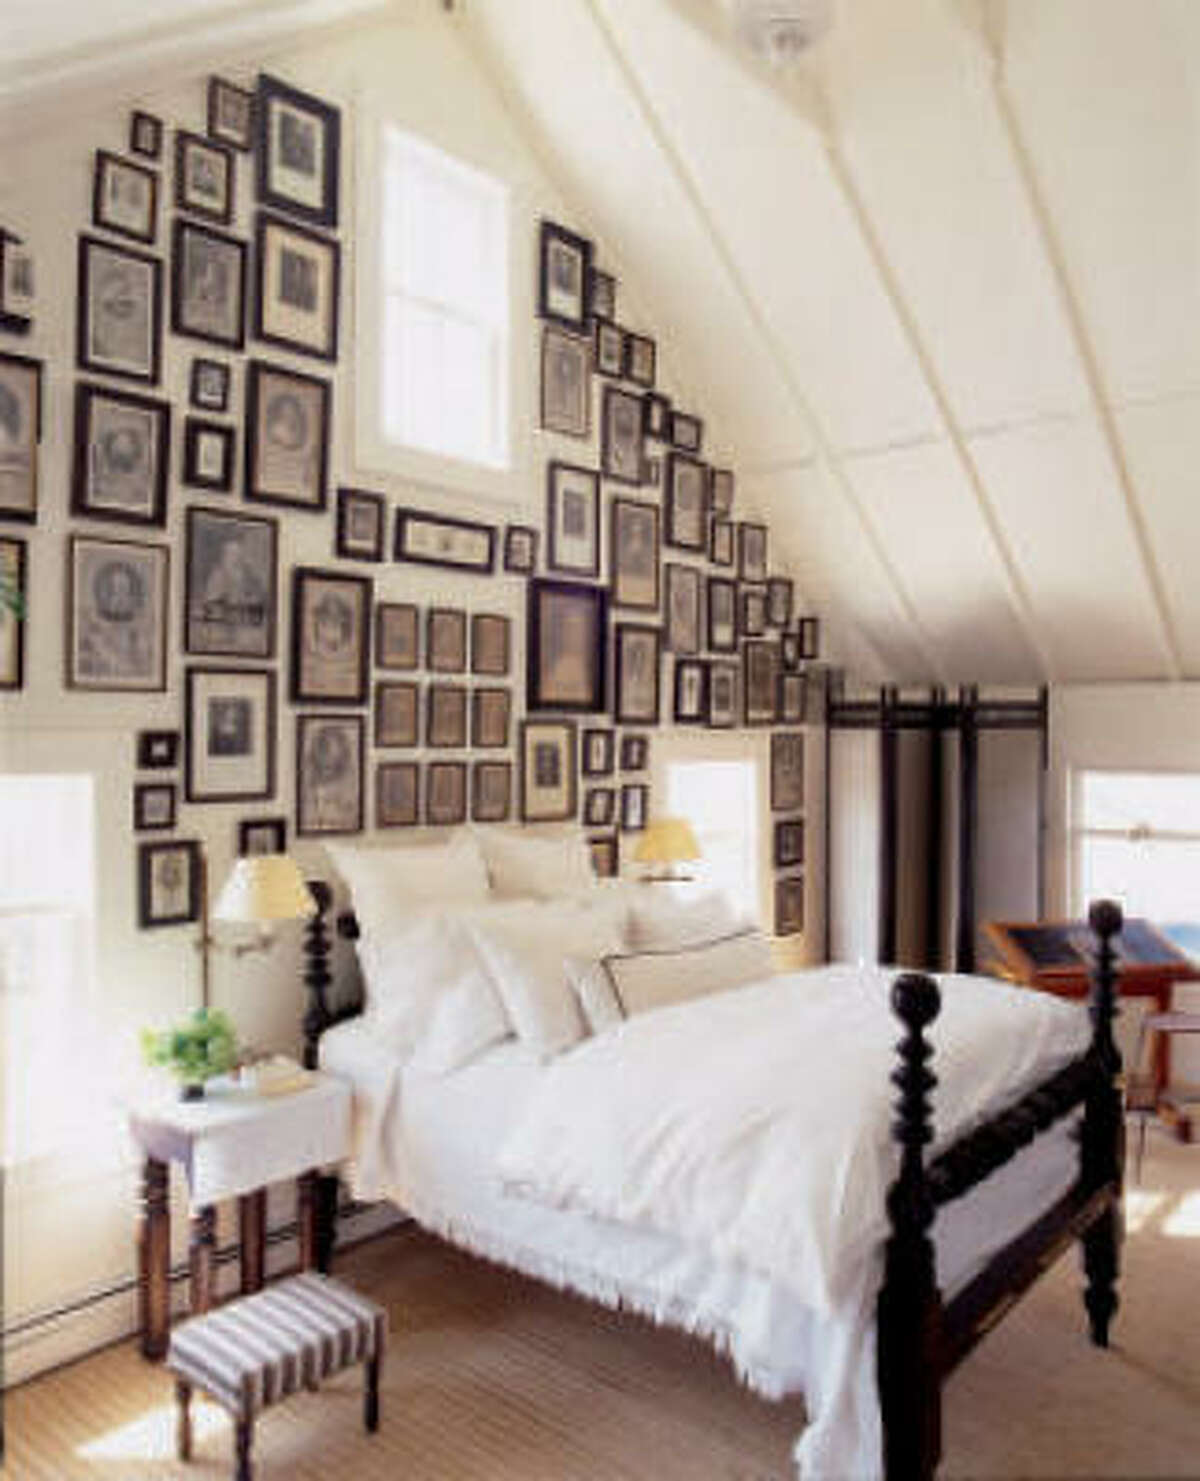 TOP OF THE STAIRS SURPRISE: Scores of British royals' portraits enliven an attic bedroom.